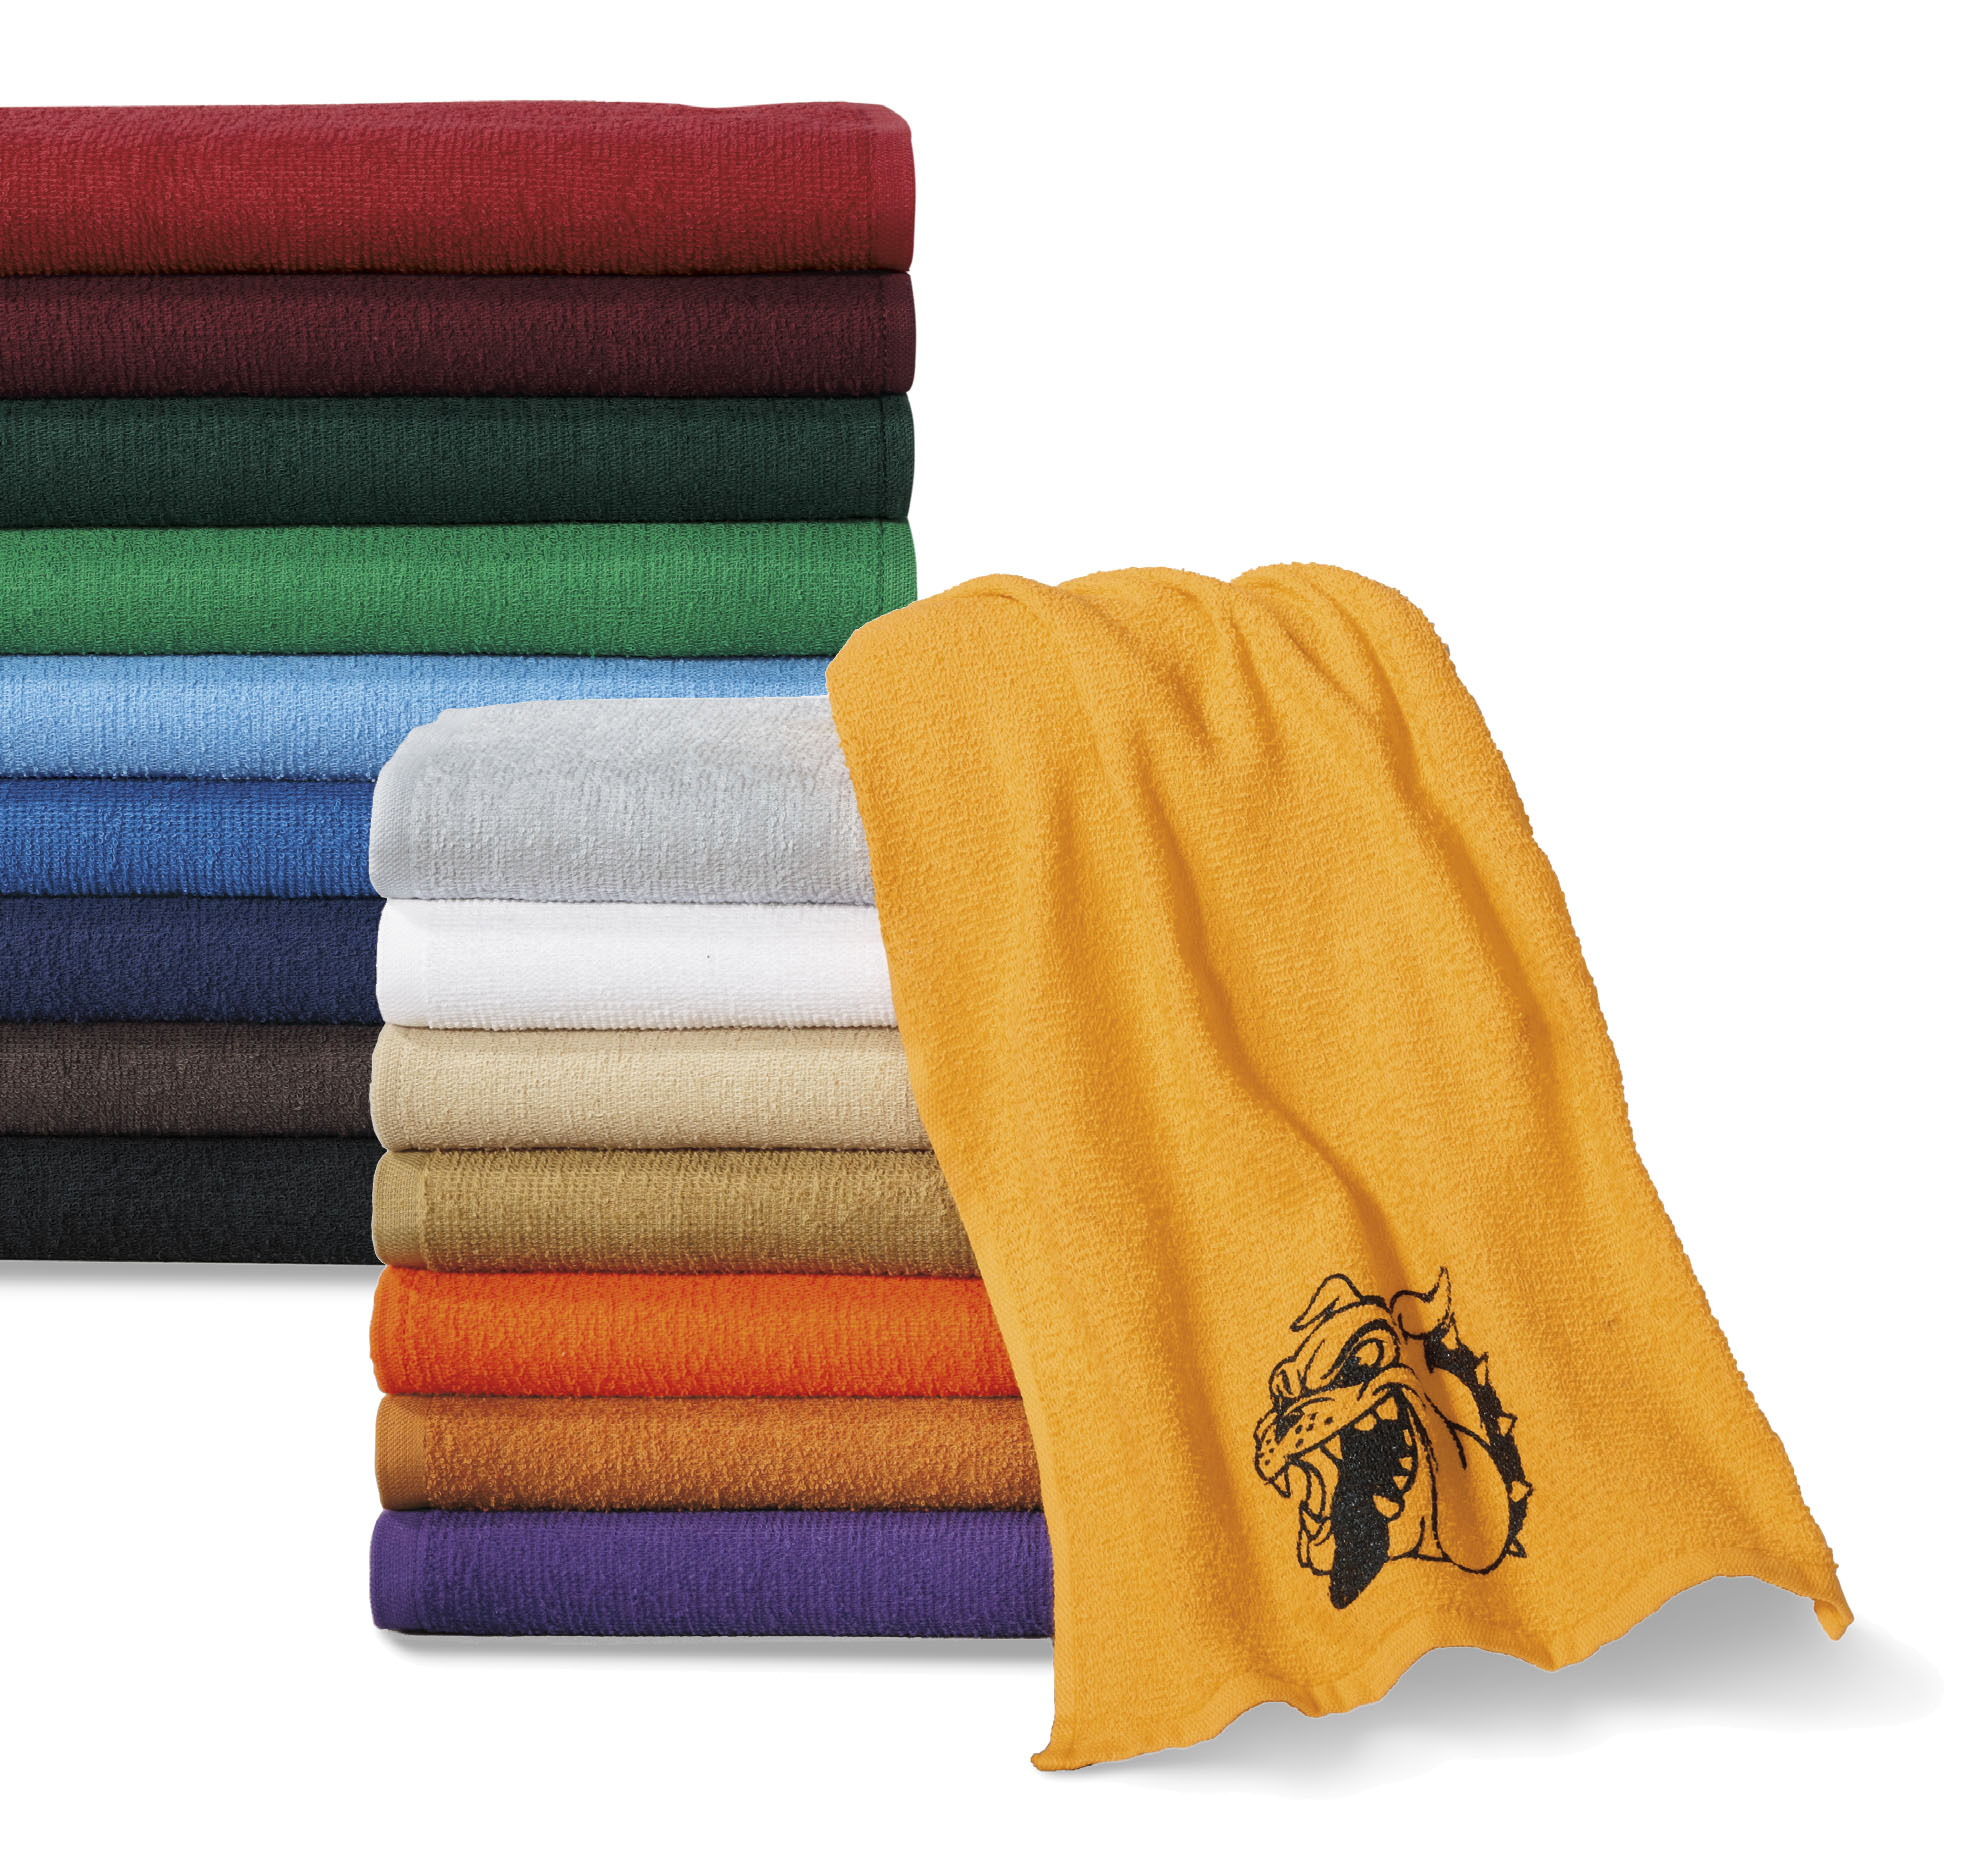 We just added custom rally towels back to our inventory. You can now design your towels with your logo or family members jersey number to show support at an event.